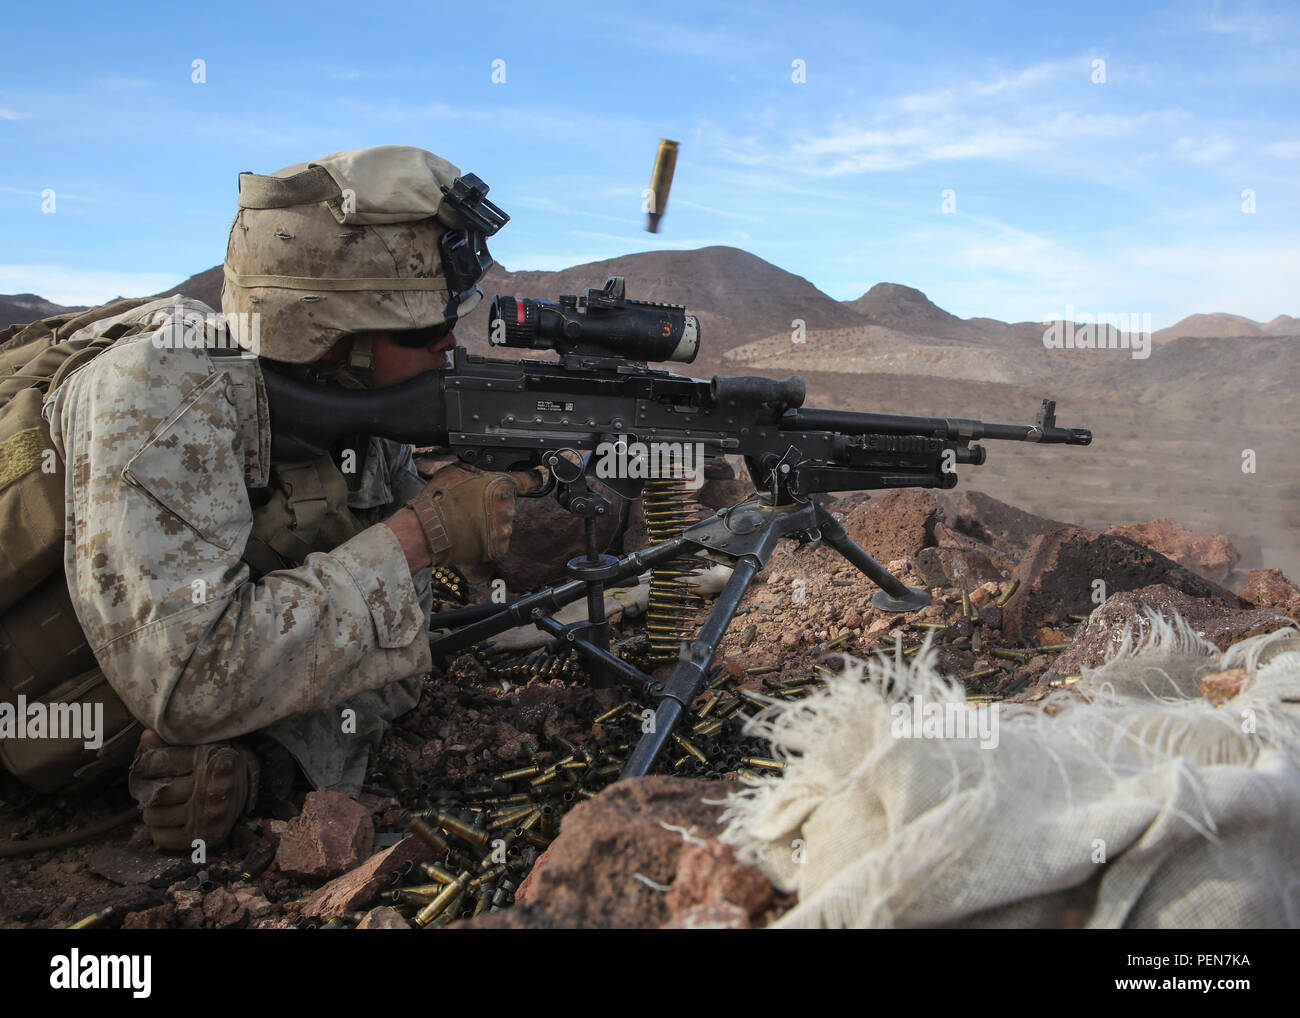 Pfc. Garrett Beck fires an M240B medium machine gun at distant targets during the company supported, live-fire assault portion of a Marine Corps Combat Readiness Evaluation at Marine Corps Air Ground Combat Center Twentynine Palms, Calif., Dec. 7, 2015 The purpose of a MCCRE is to evaluate Marines' collective performance in specific mission requirements that will prepare them for their upcoming deployment rotation. Beck is a machine gunner with Company F, 2nd Battalion, 7th Marine Regiment, 1st Marine Division. (U.S. Marine Corps photo by Lance Cpl. Devan K. Gowans) - Stock Image